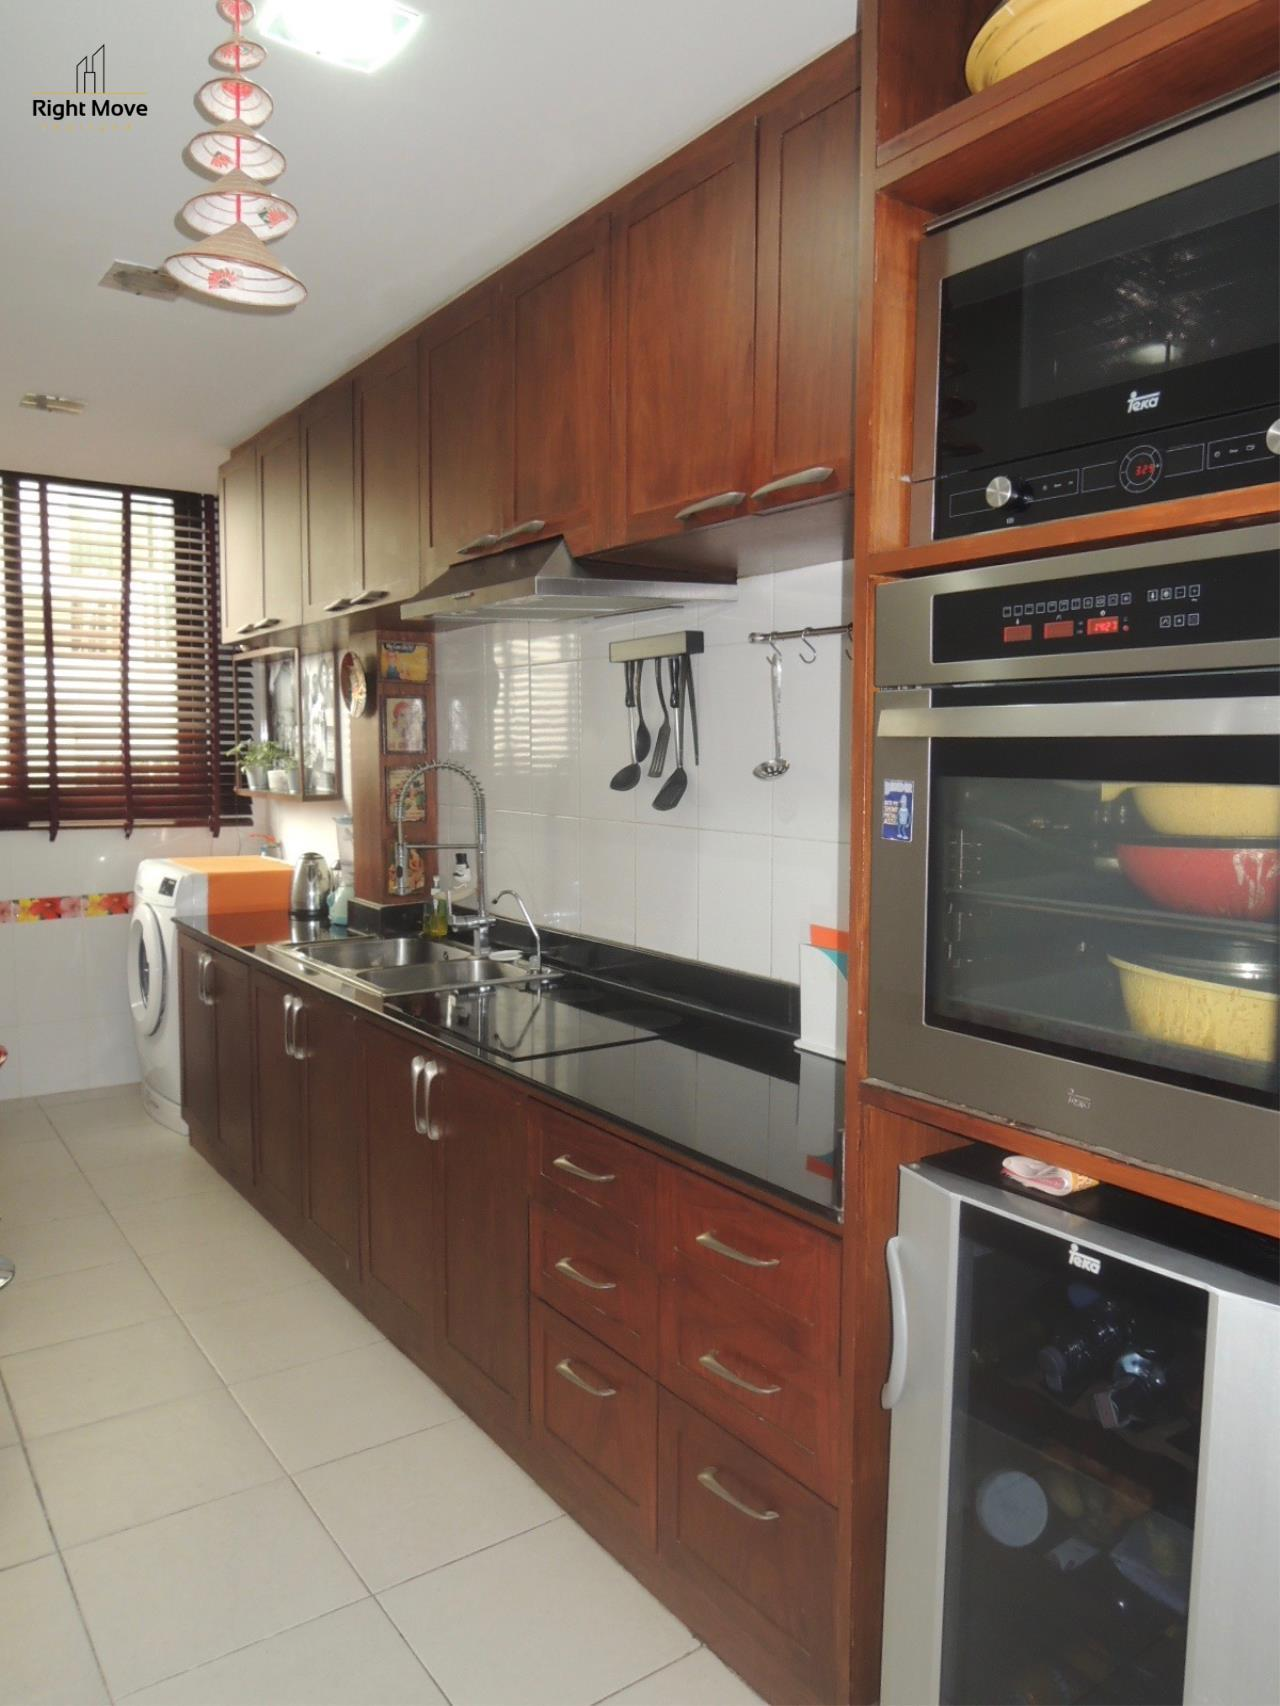 Right Move Thailand Agency's CA1864 Top View For Rent 45,000 THB - 3 Bedrooms - 115 Sqm 26